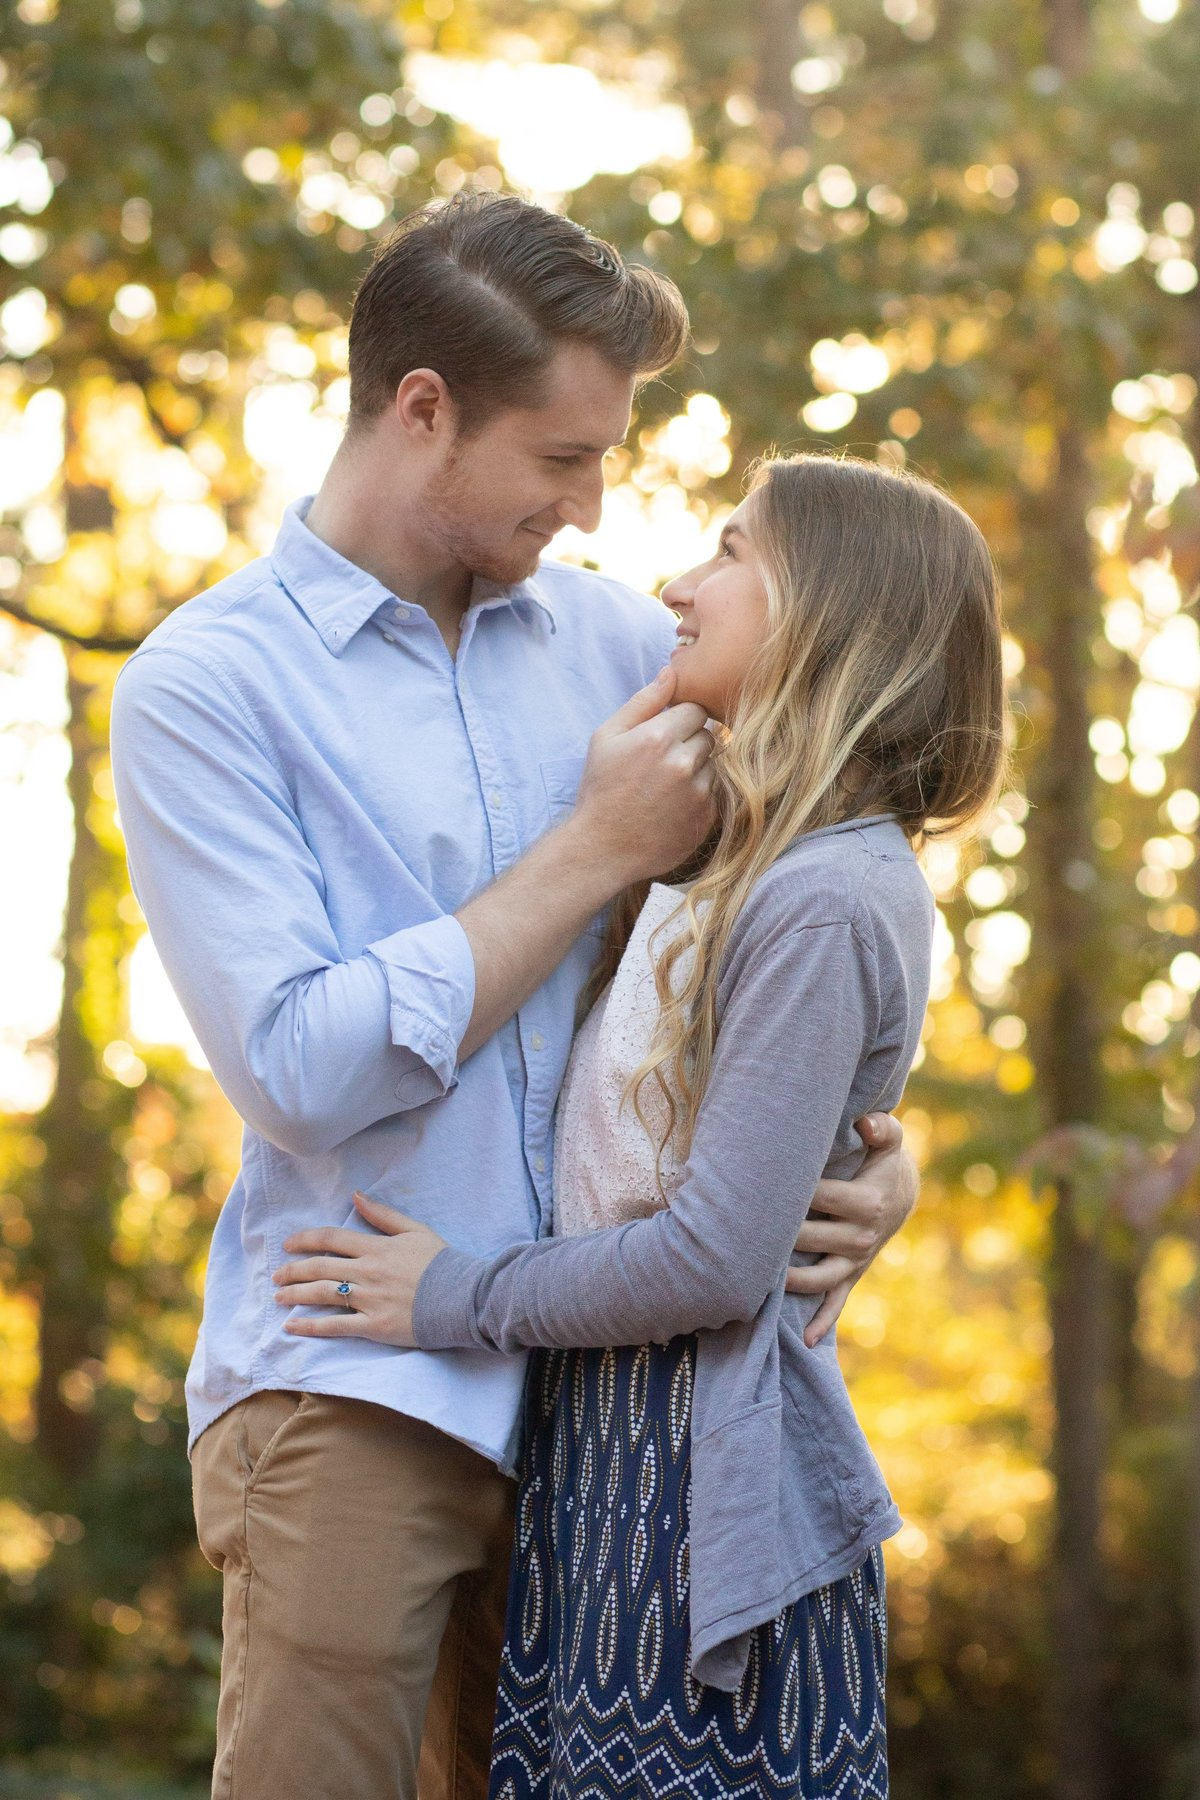 monroe_photographer_a_focused_life_photography_engagement_session_vines_garden_romantic_fall_4